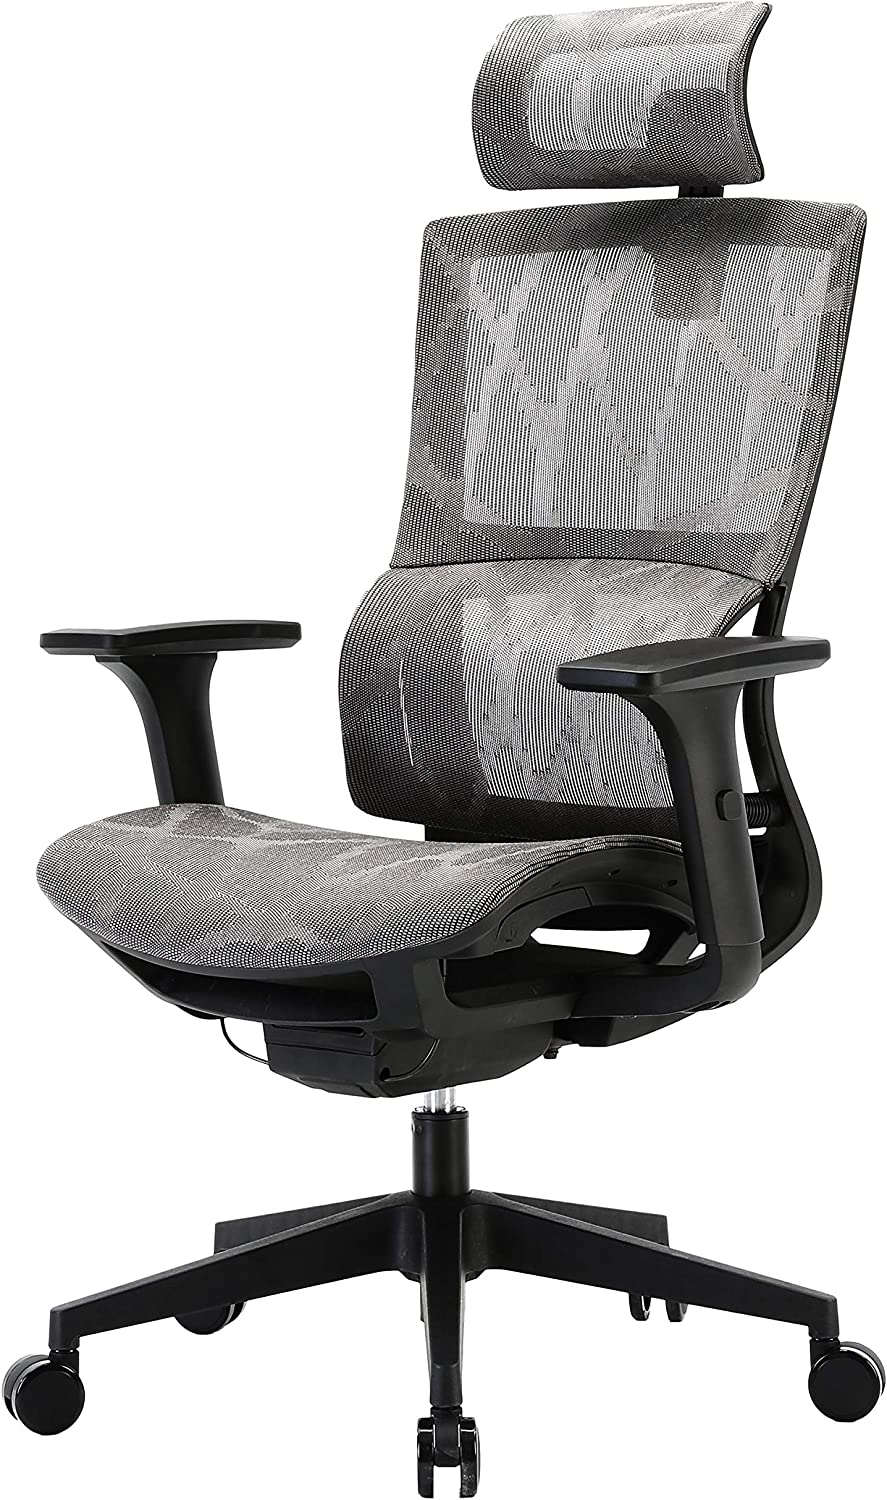 XUER Ergonomic Office Chair with Cozy Lumbar Support and Adjustable 3D Armrest